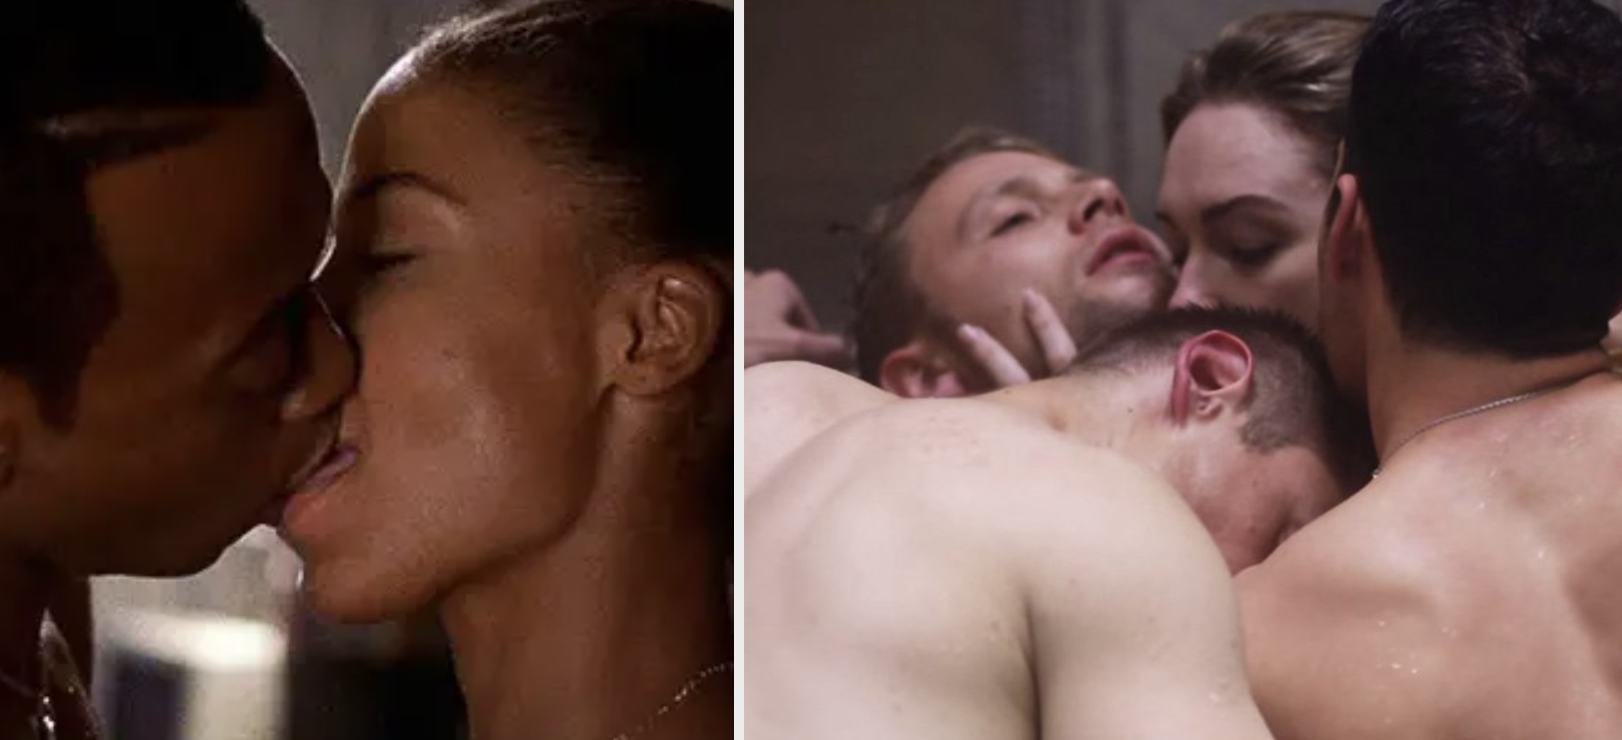 """Side-by-side of the two main characters from """"Love & Basketball"""" kissing, and a group orgy of four characters from Netflix's """"Sense8"""" kissing in a hot tub"""